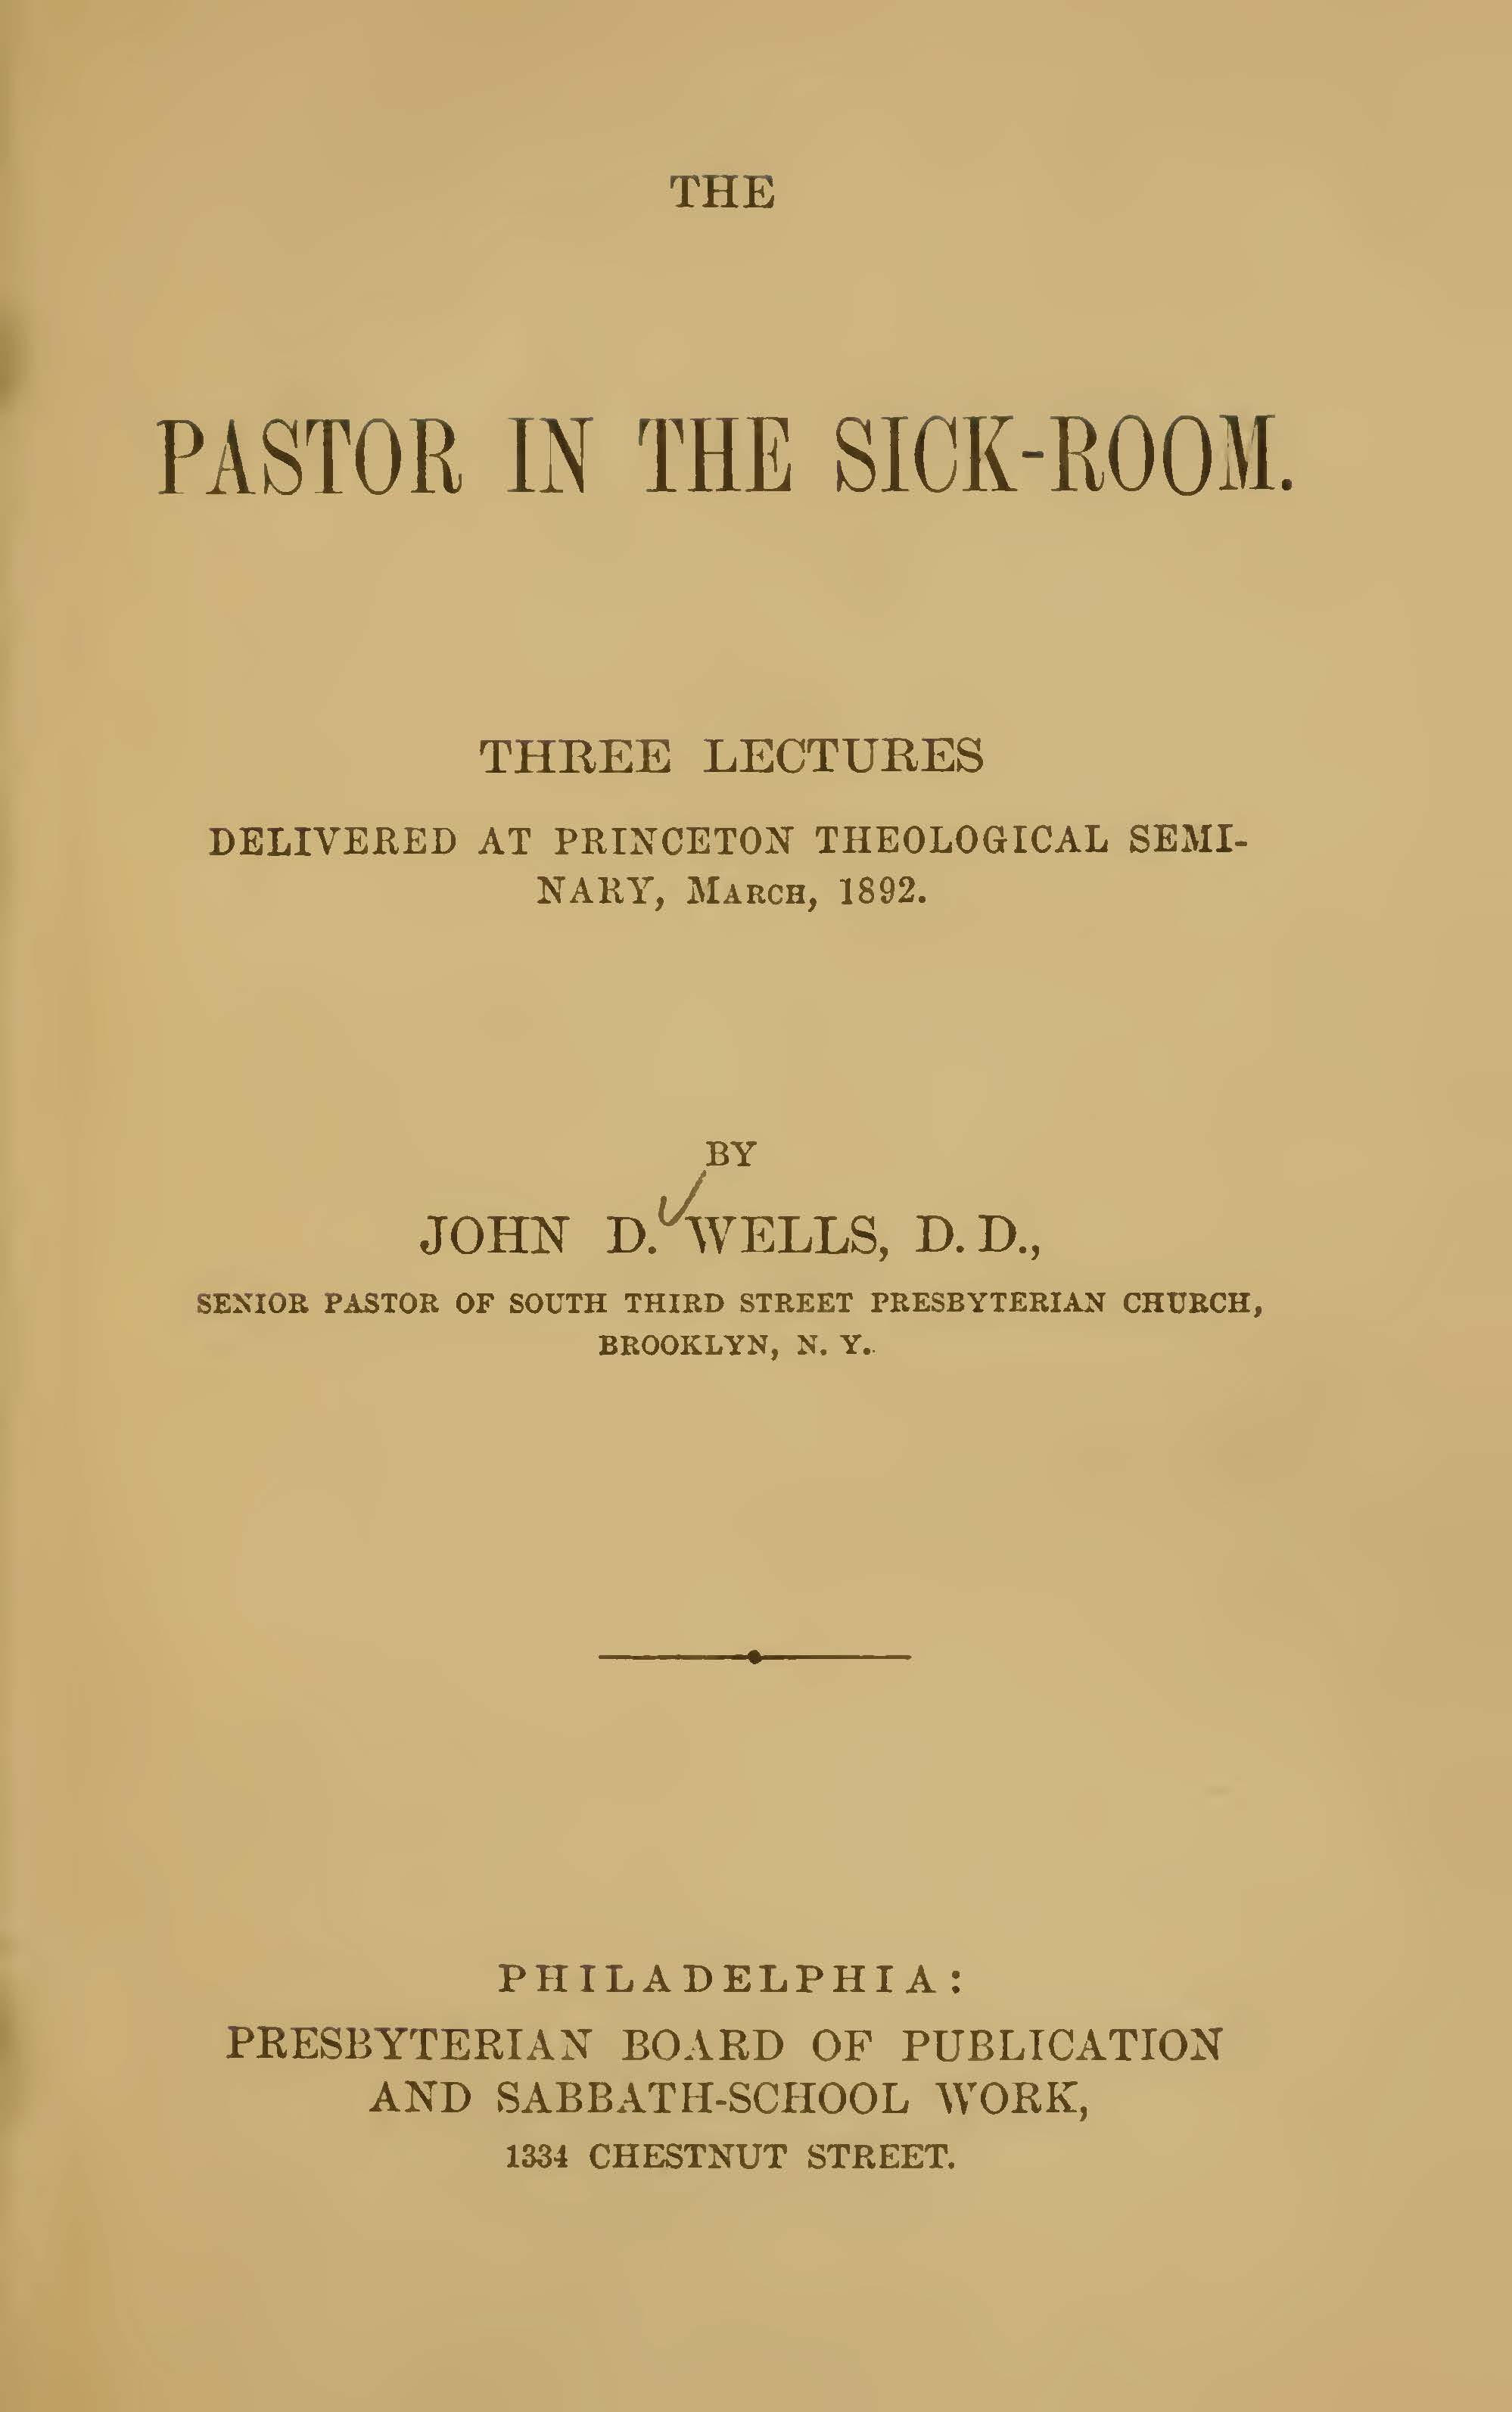 Wells, John Dunlap, The Pastor in the Sick-Room Title Page.jpg